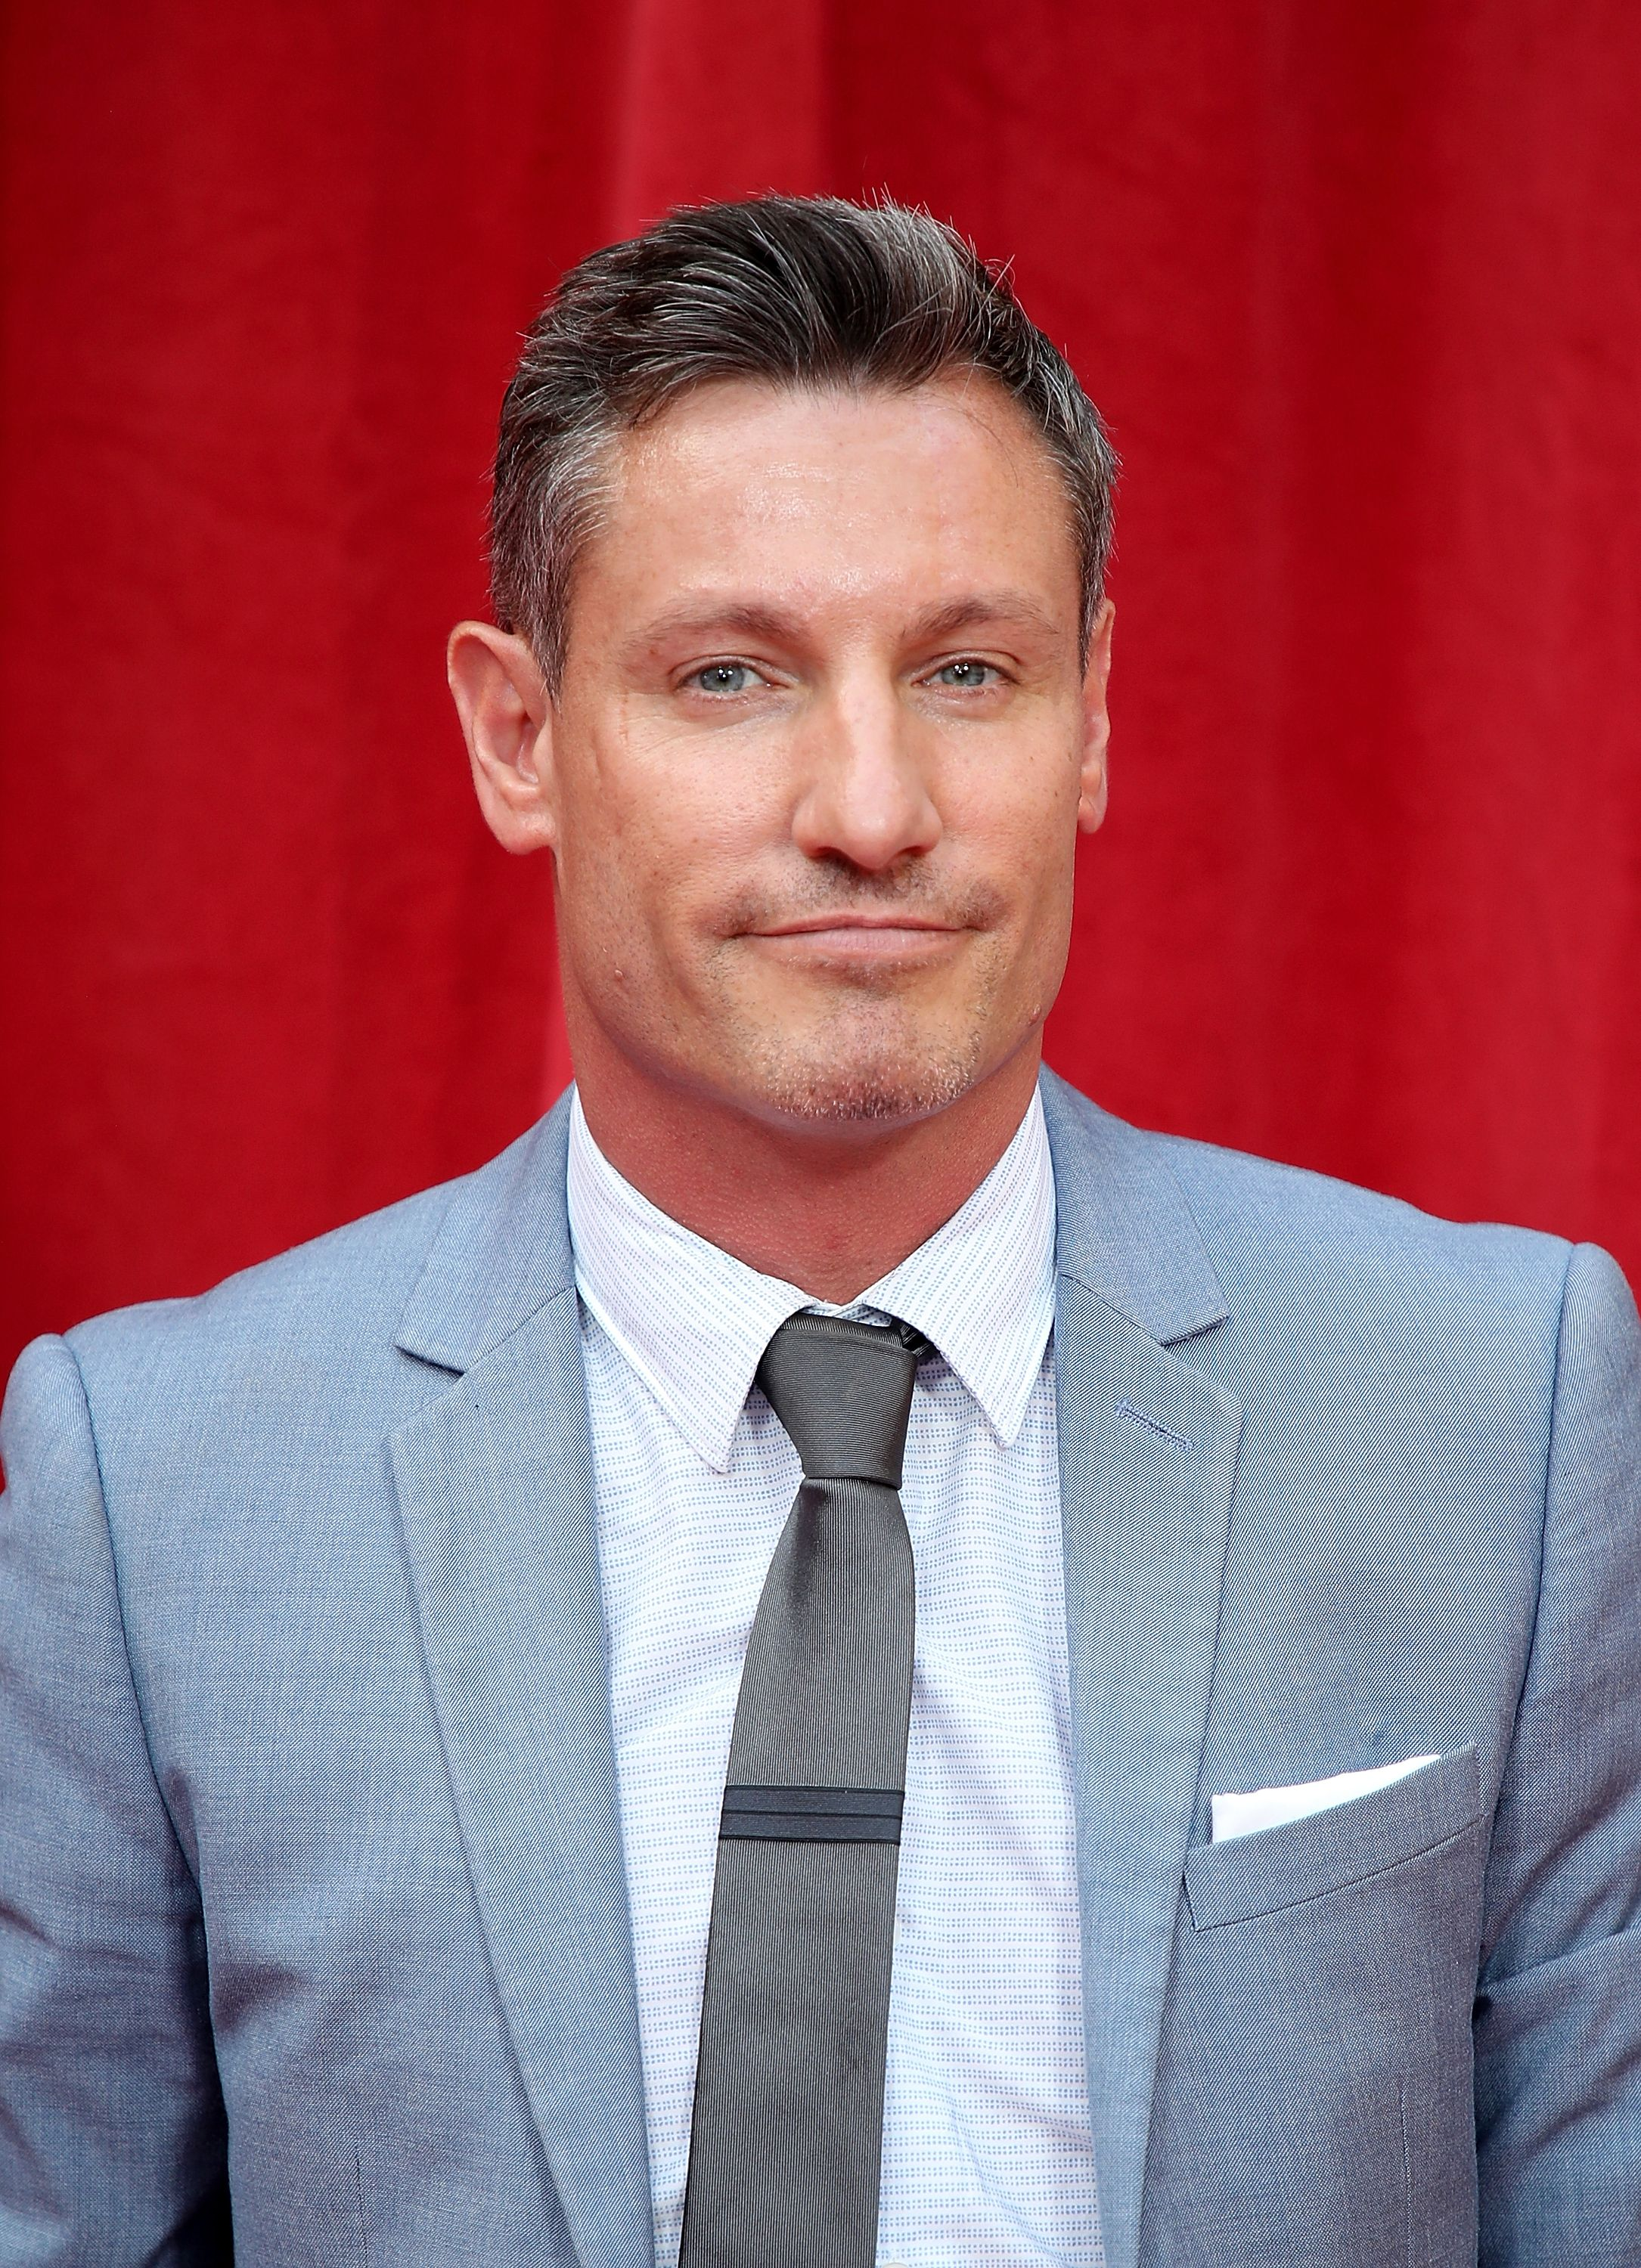 EastEnders star Dean Gaffney has been written out of the soap